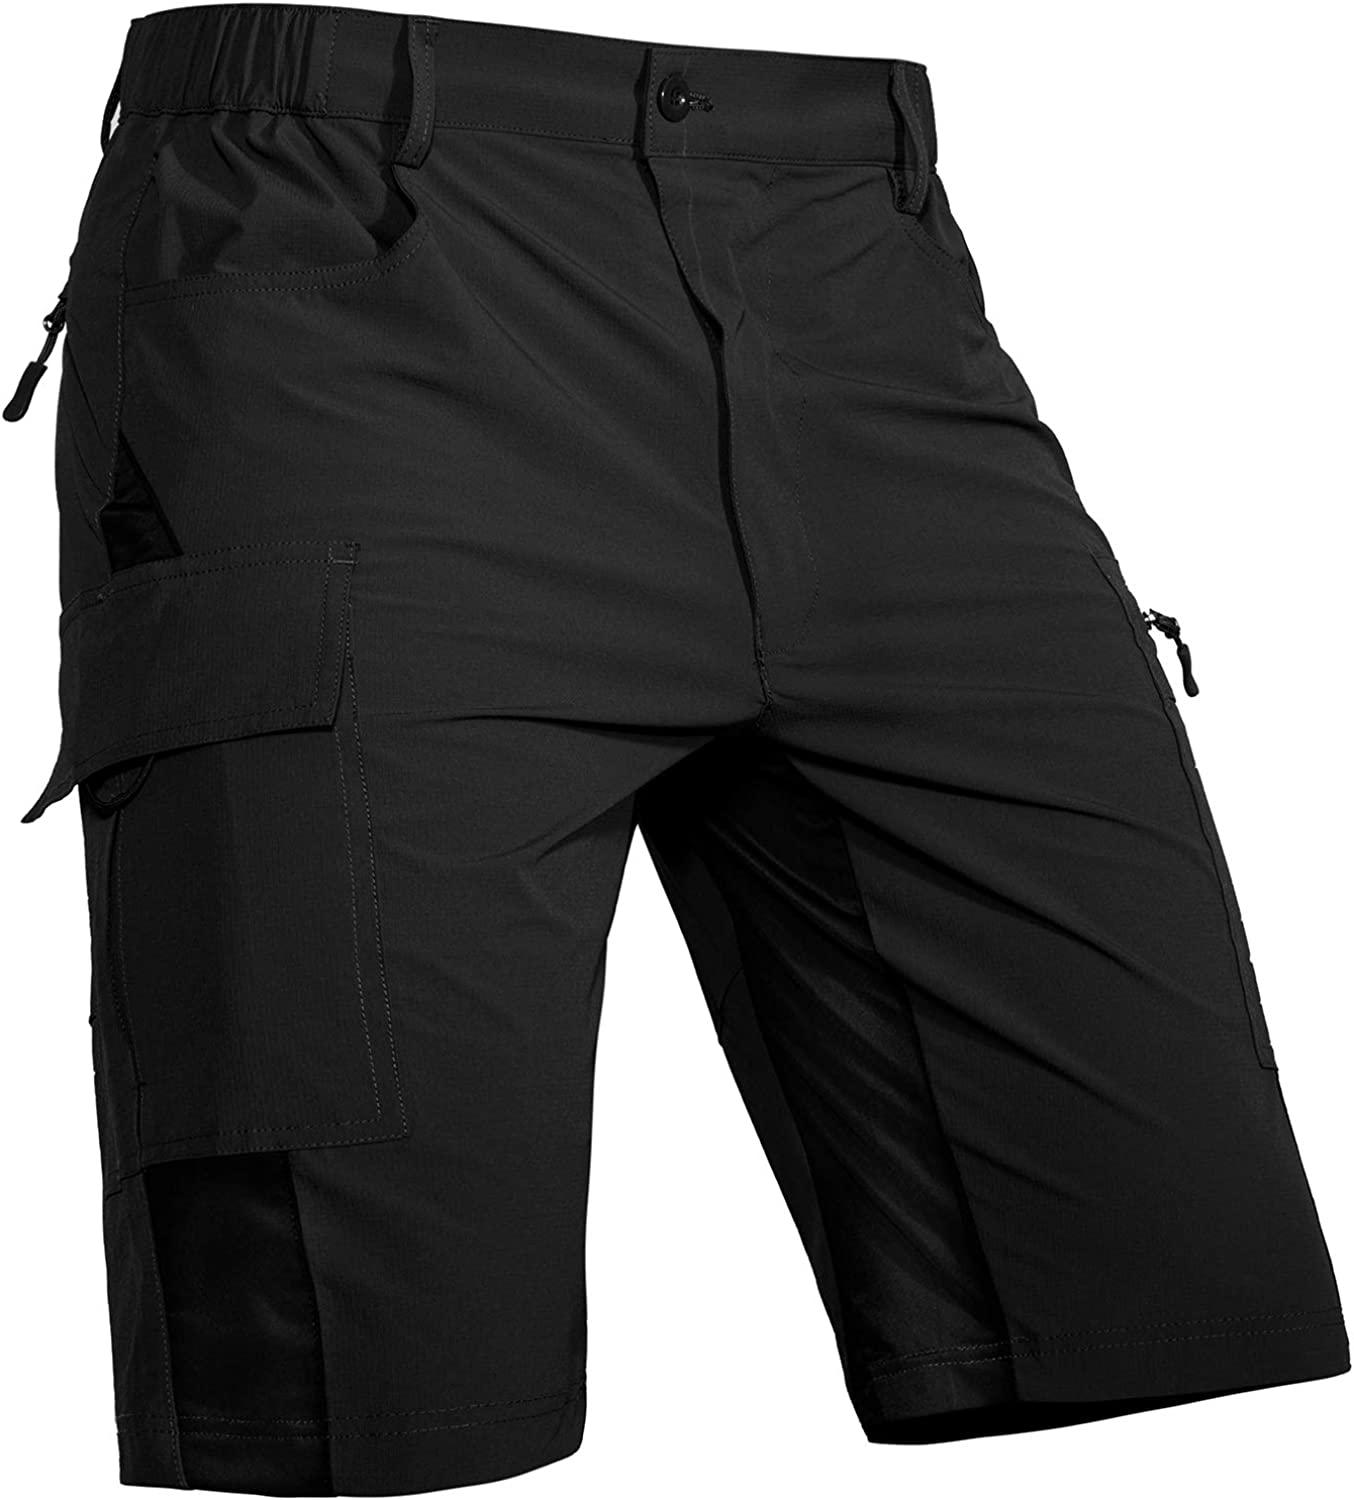 Cycorld Cargo Hiking Shorts for Elastic Lightweight Stretchy We OFFer free at cheap prices Men